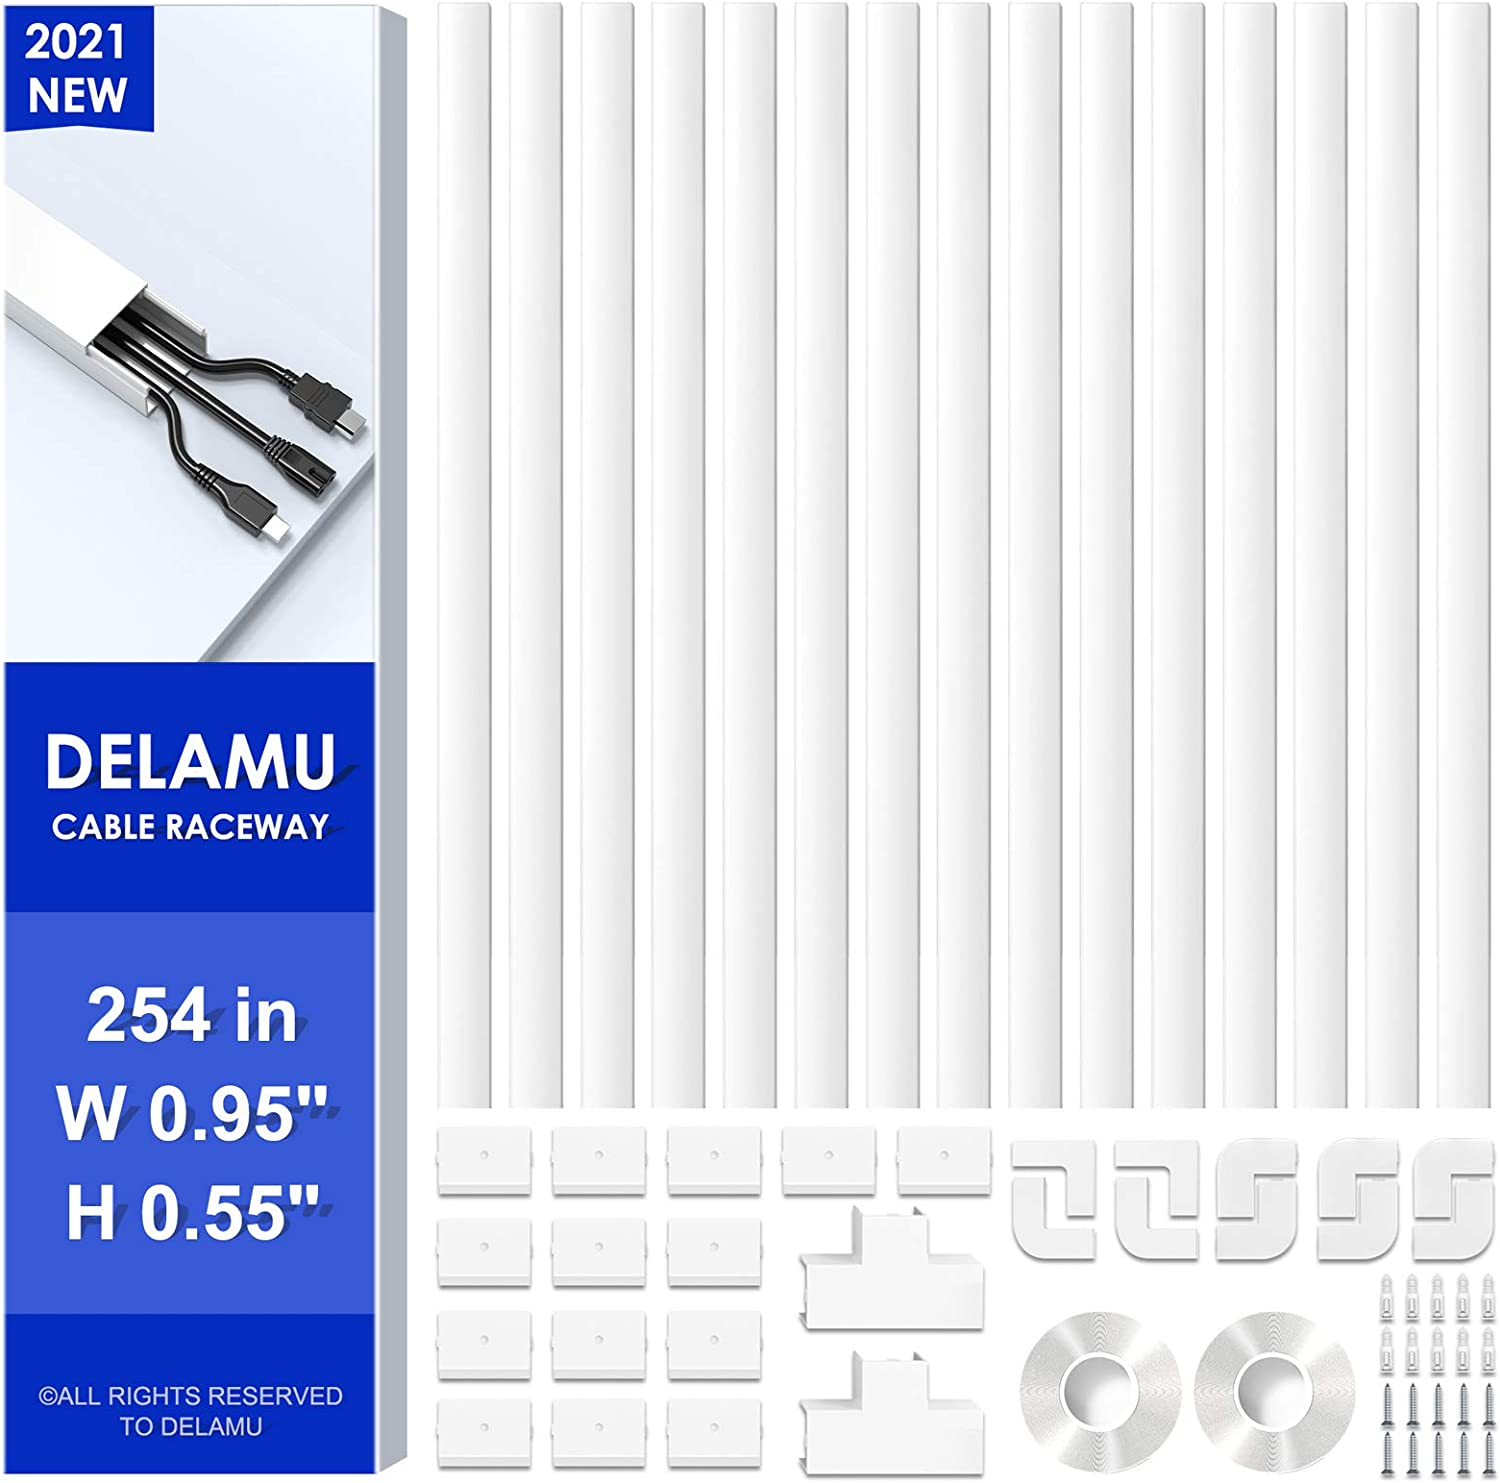 254in Cord Hider Cover, Delamu Cable Concealer Raceway, PVC Cable Hider Cover, Cuttable Wire Cover Hider for TV on Wall, 15x L16.9in W0.95in H0.55in, CC01-15White